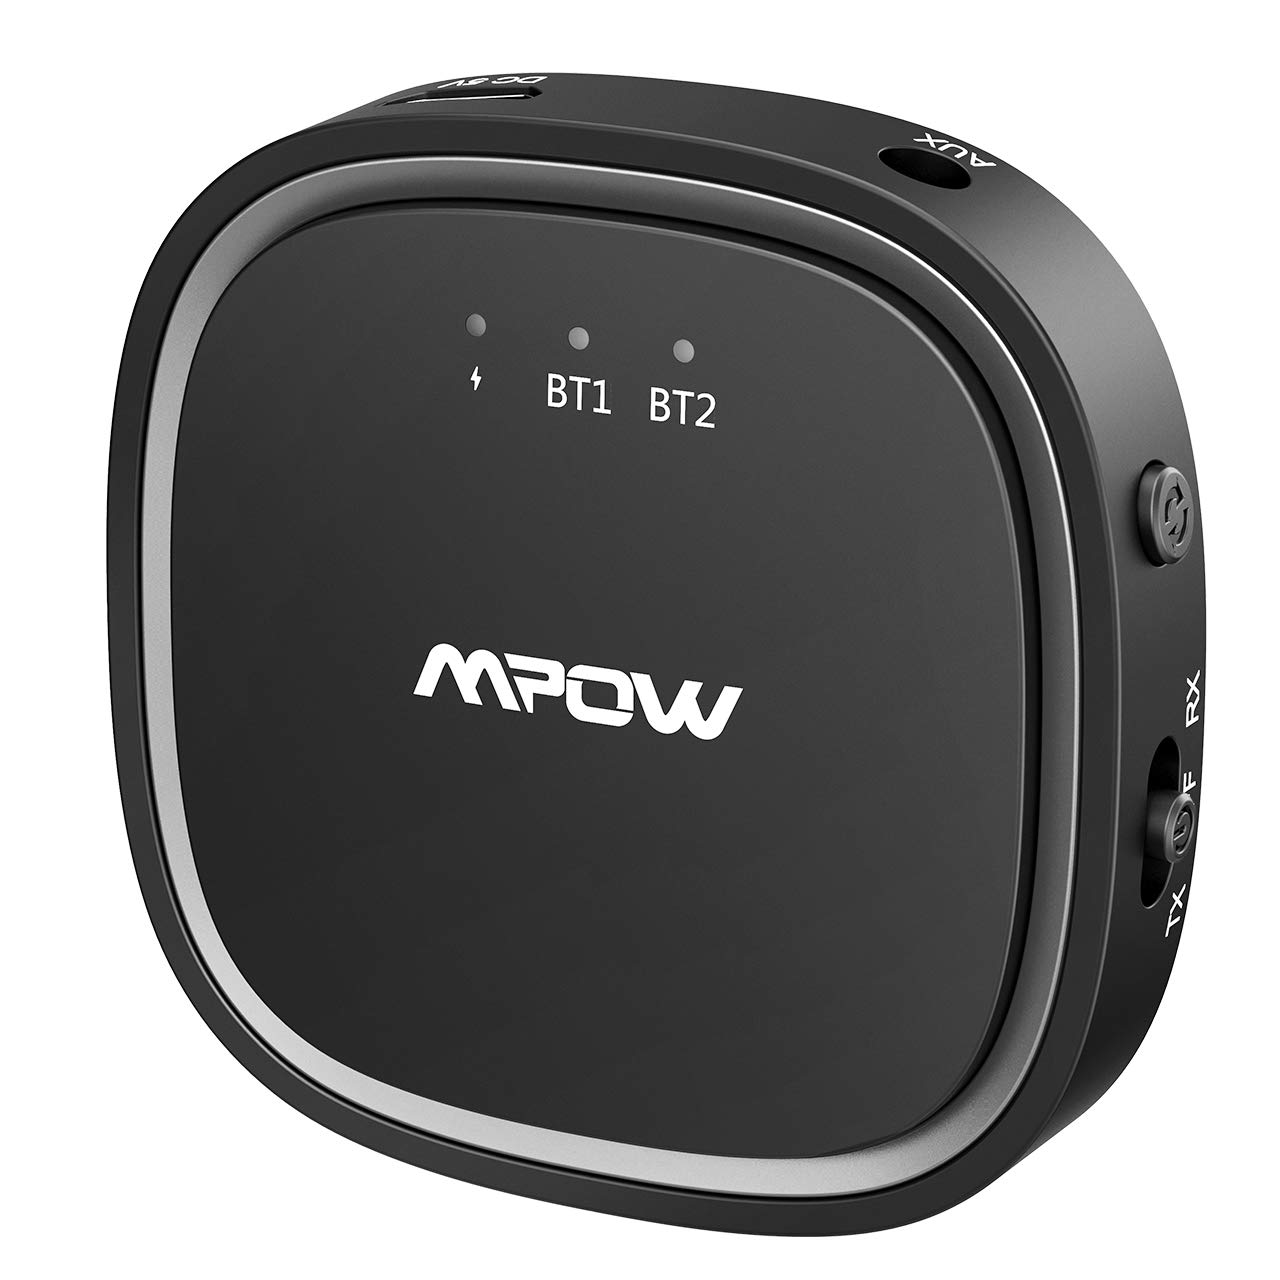 Mpow Bluetooth Transmitter and Receiver, 5.0 2-in-1 Bluetooth Adapter with aptX Low Latency and aptX HD, 50ft Wireless 3.5mm Audio Adapter, Dual-Link for TV, PC, CD Player, Home Stereo or MP3 Player